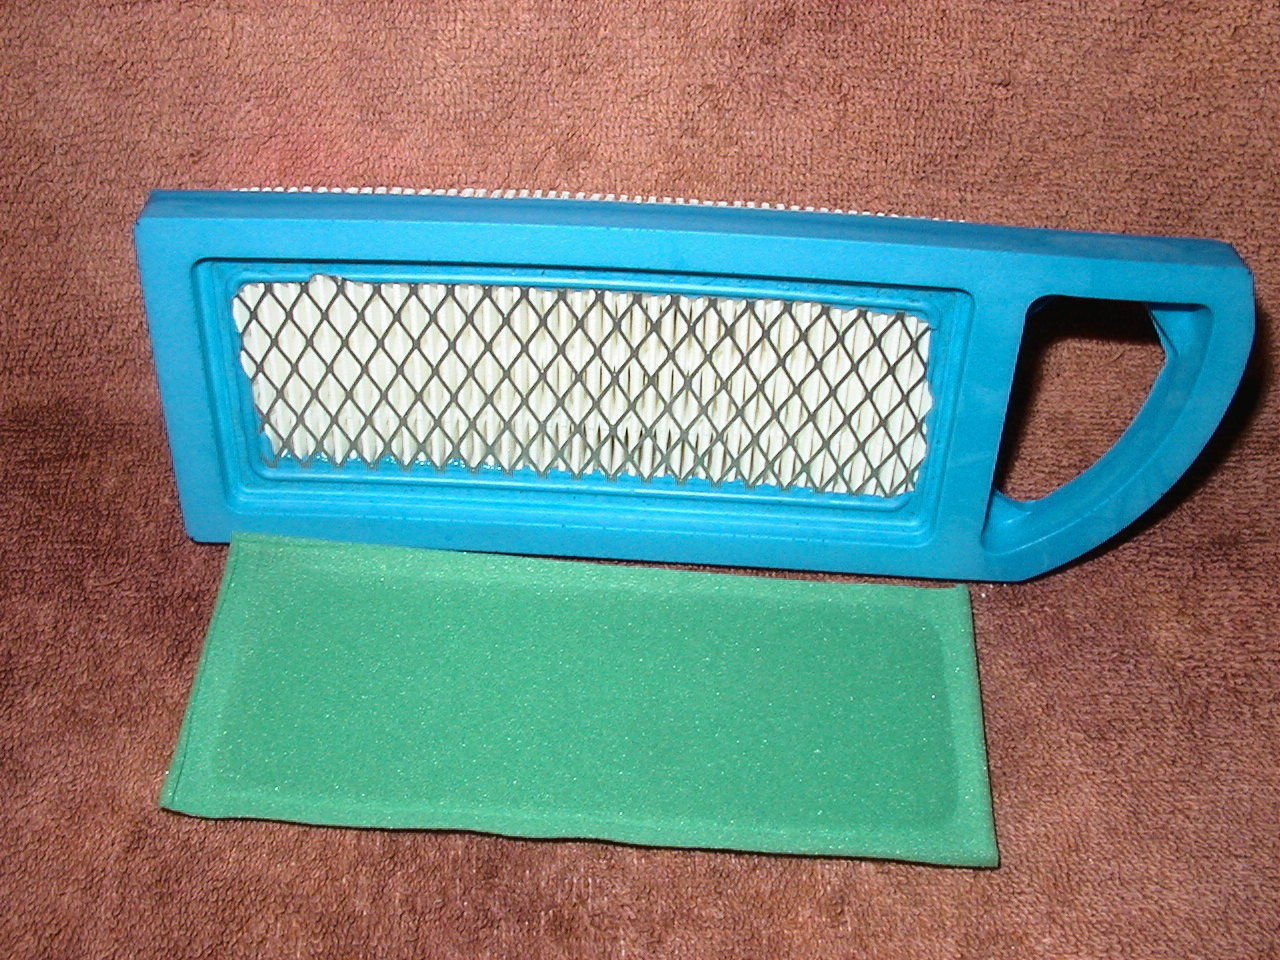 Briggs & Stratton Air Filter and Pre Filter Replaces 697153, 795115, 697015